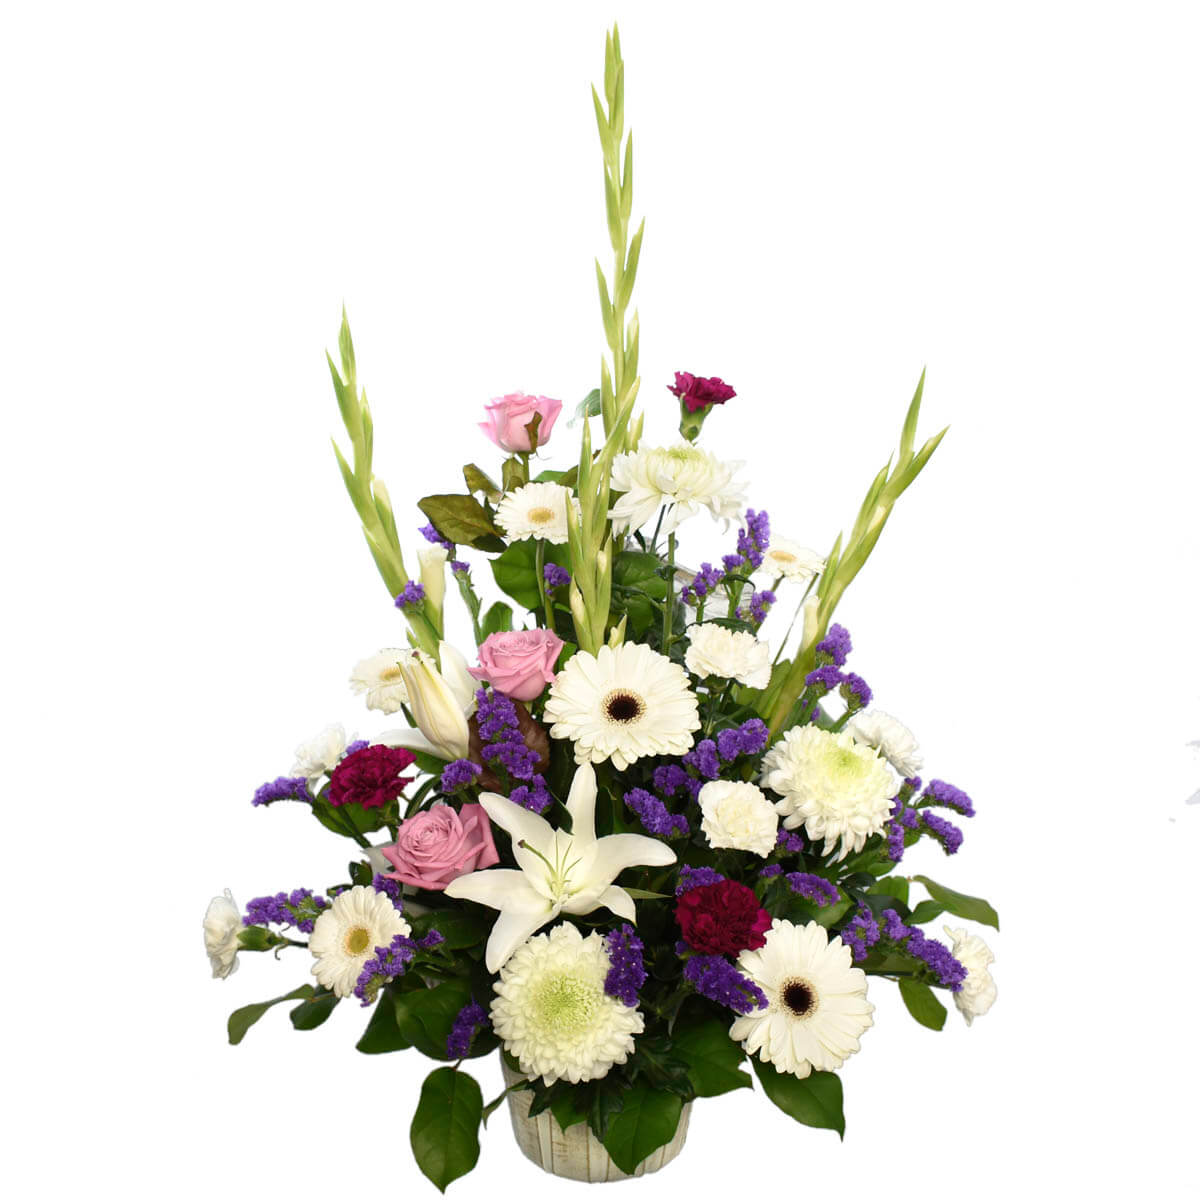 Luxury Sympathy and Funeral Flower Delivery Vancouver - Adele Rae